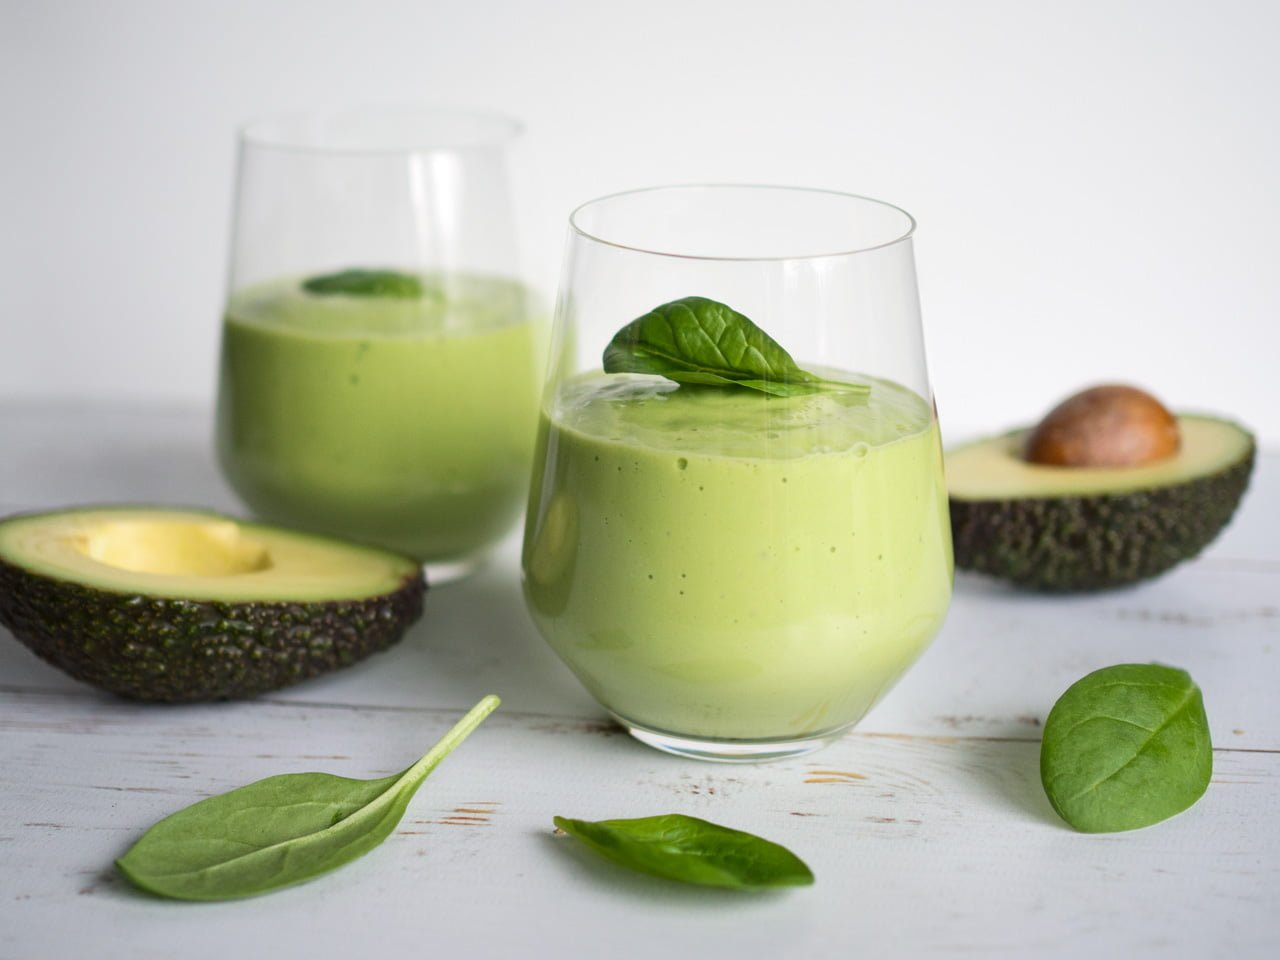 grön smoothie spenat avokado